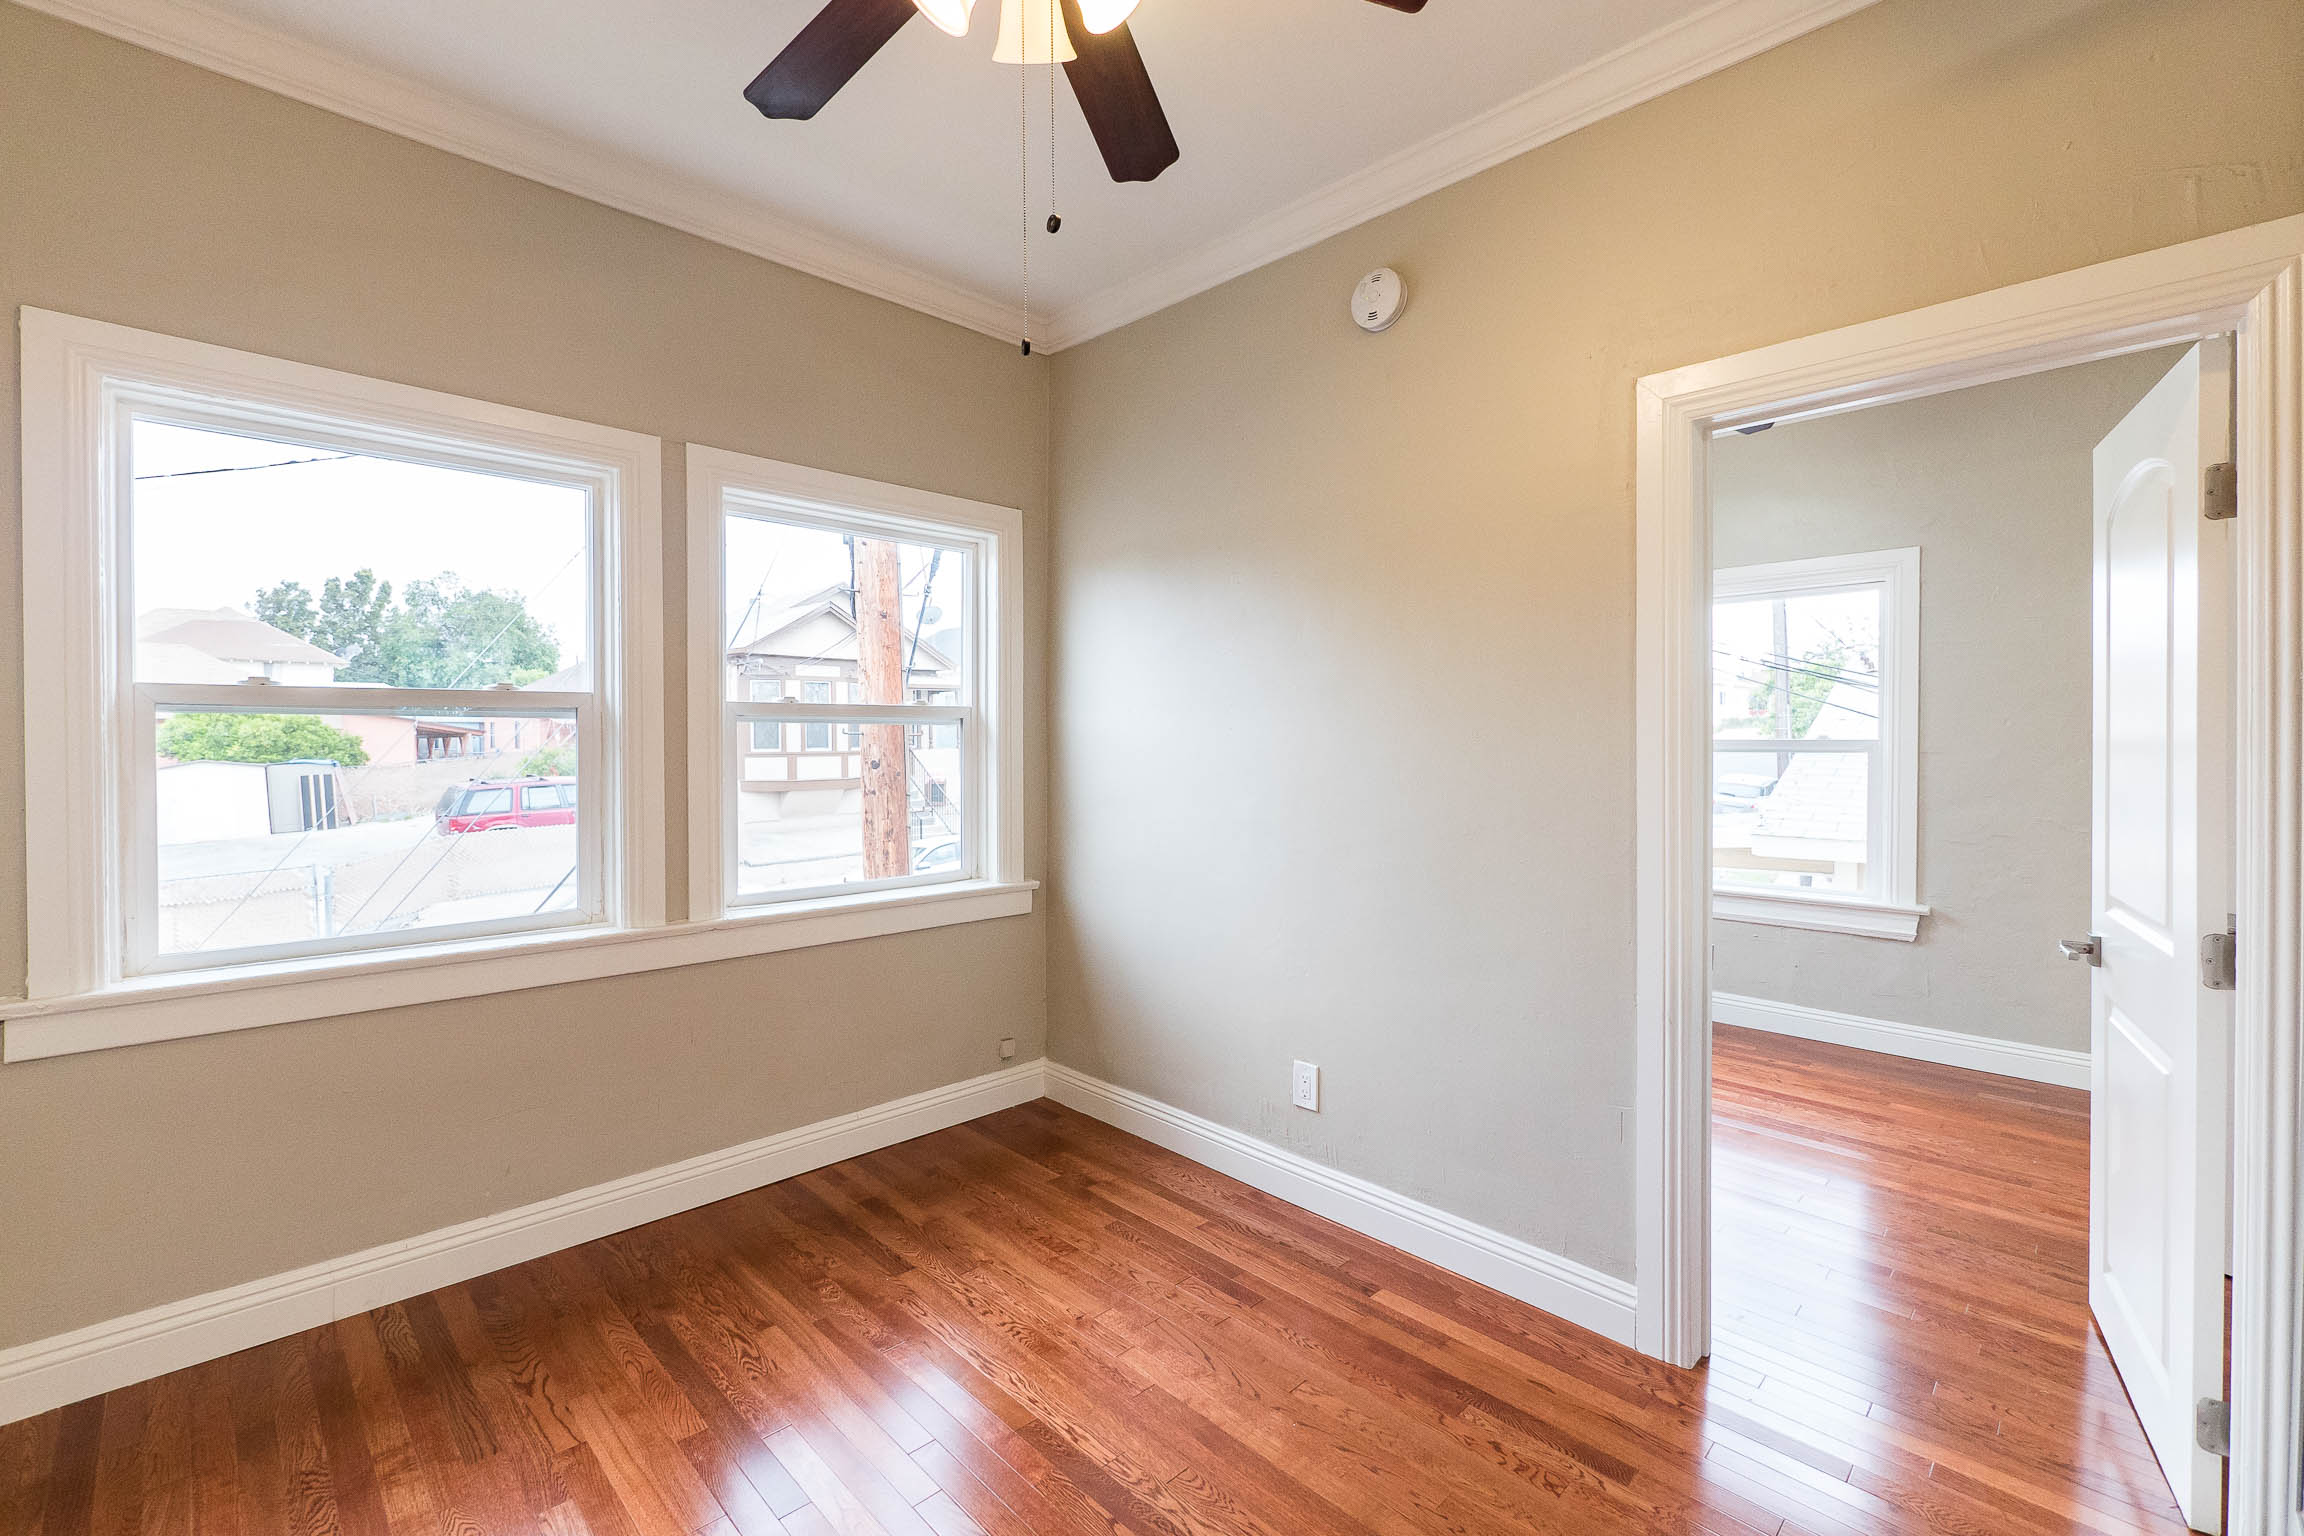 New Renovated Junior 1BR in Boyle Height | Near Evergreen Recreation Center | It's To.Die.For.